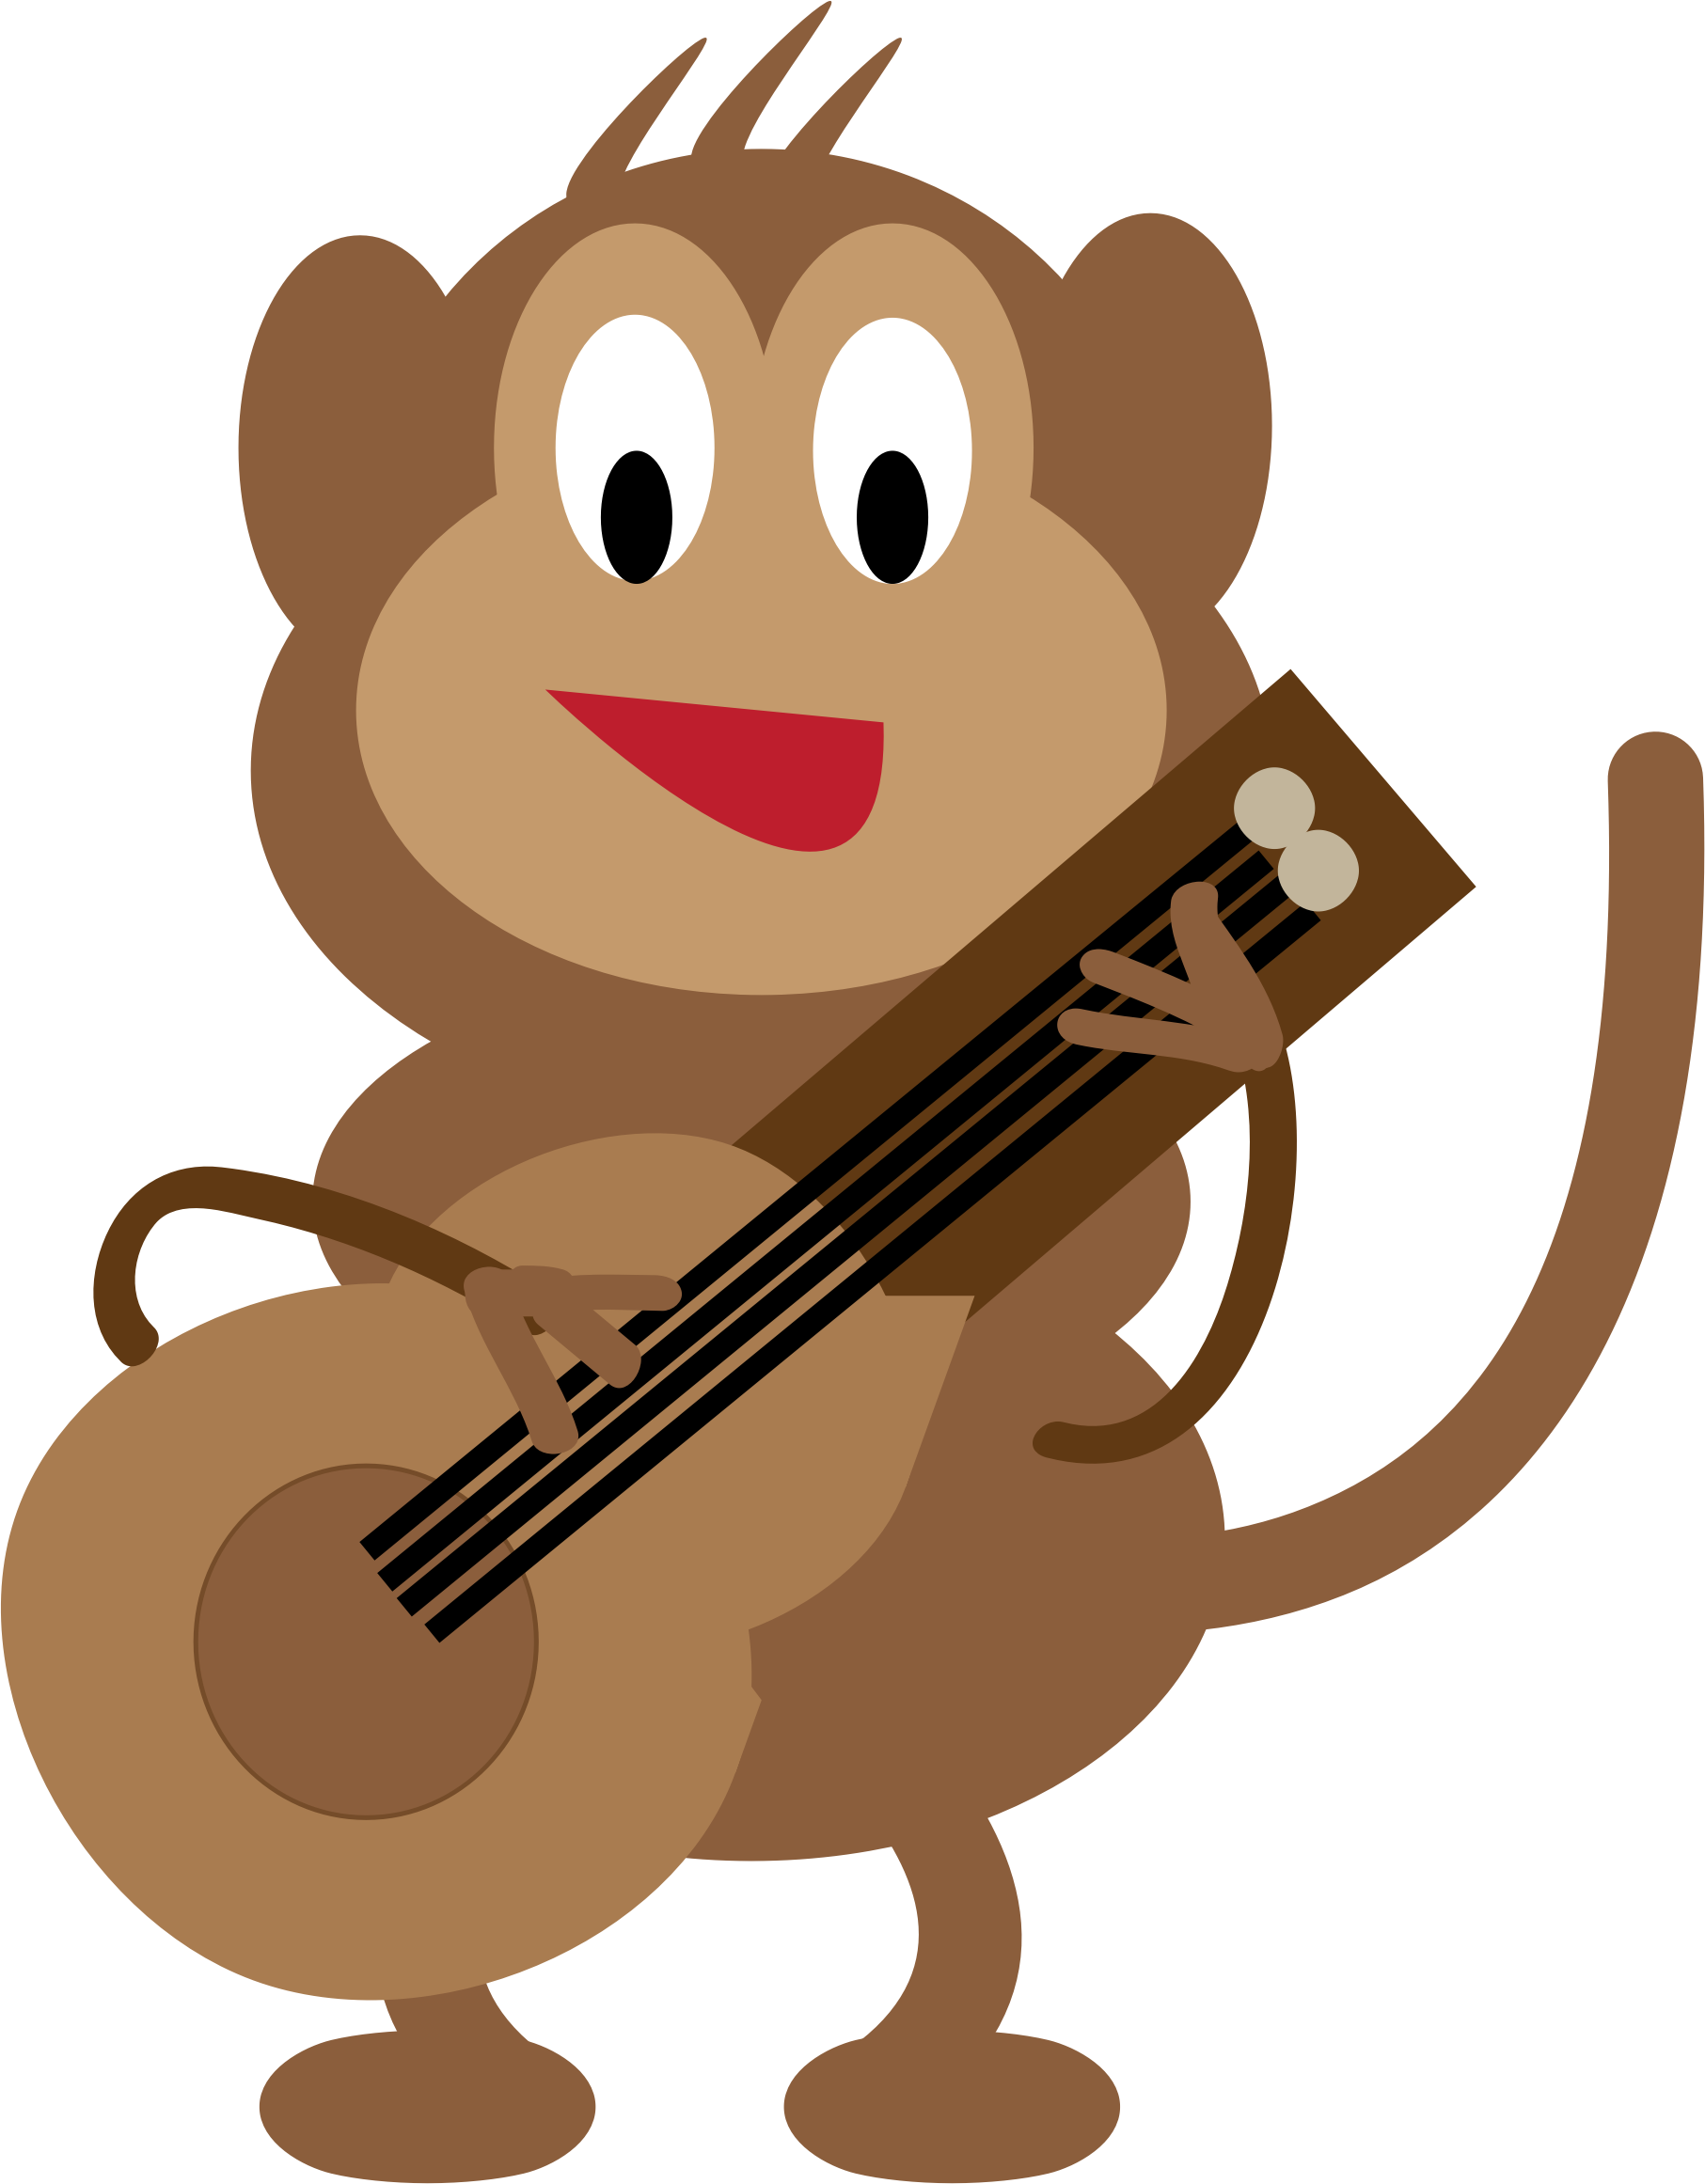 Monkey guitarist big image. Clipart guitar cartoon